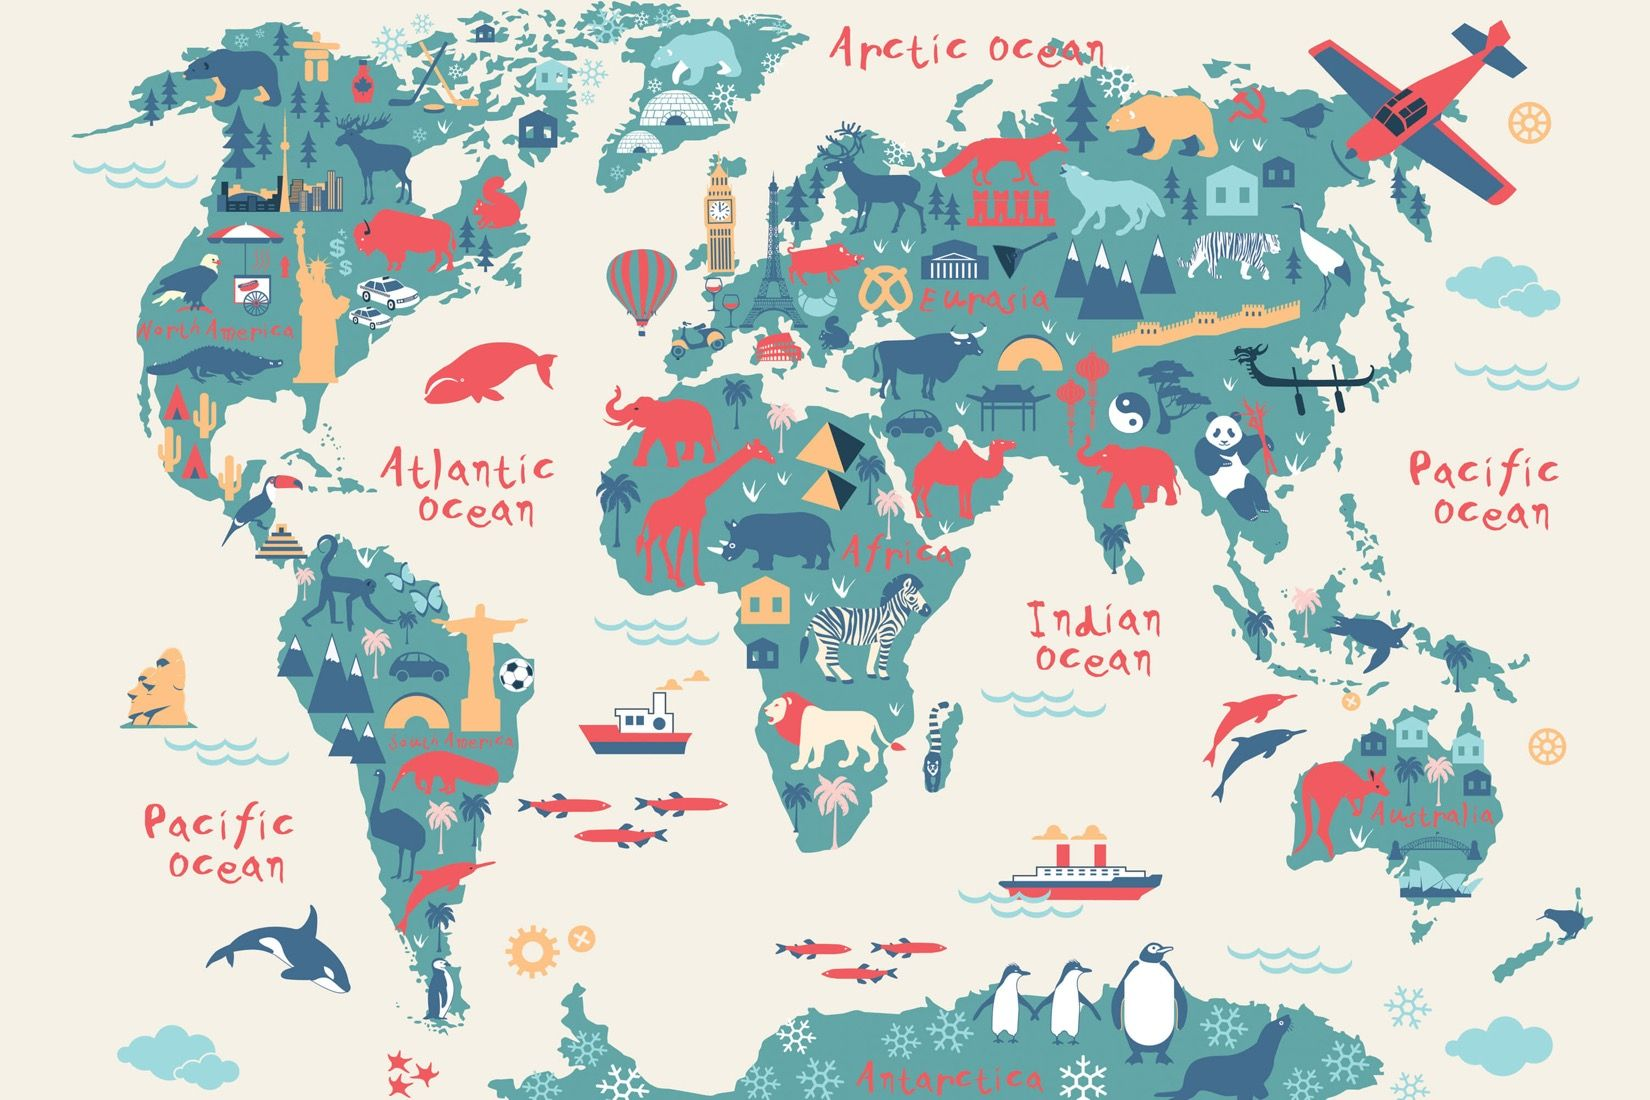 Explorer kids world map mural muralswallpaper design explorer kids world map mural muralswallpaper gumiabroncs Image collections